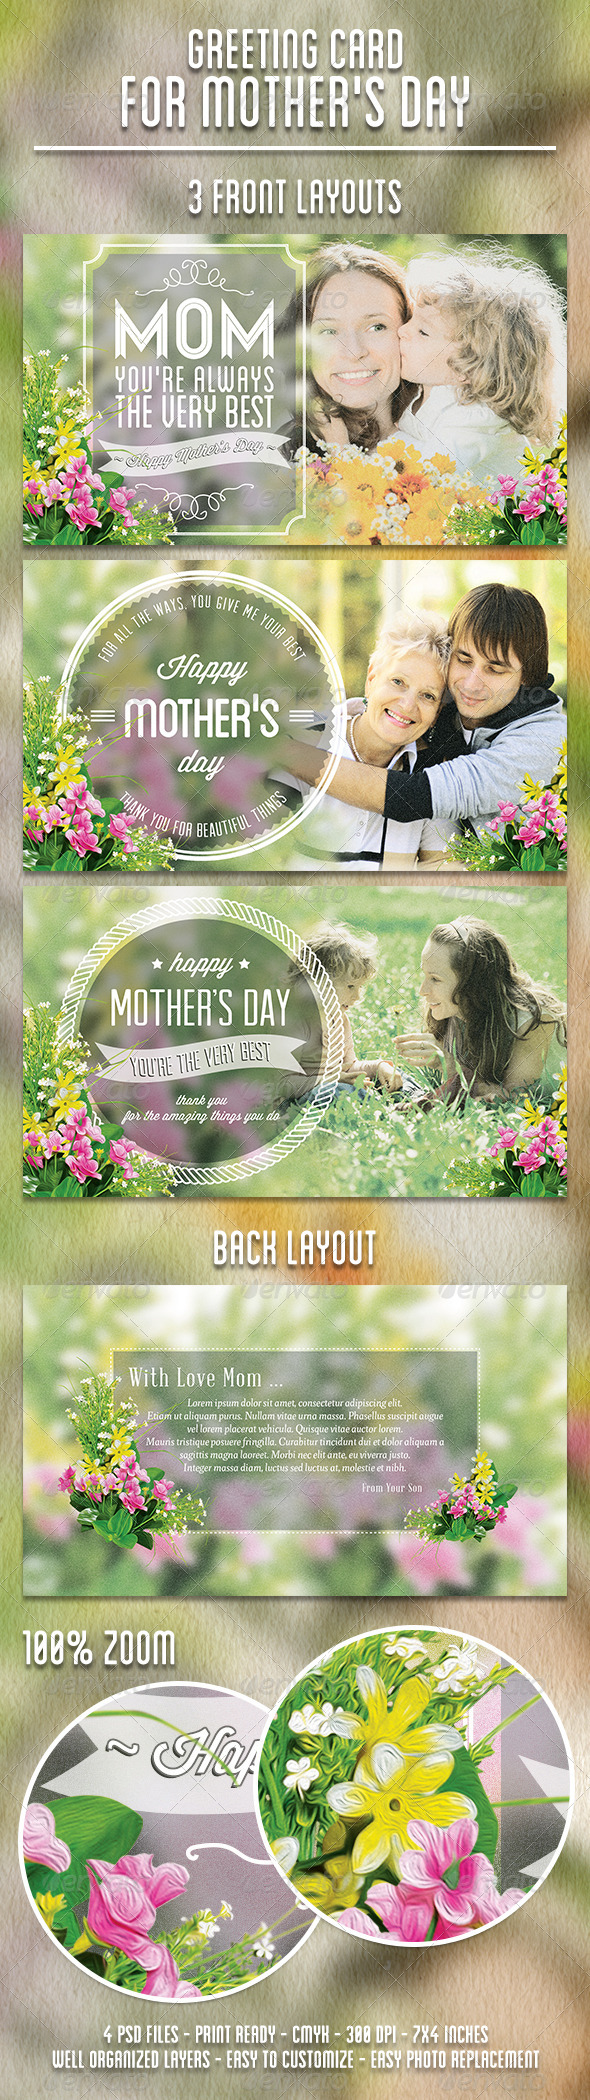 Greeting Card for Mother's Day - Holiday Greeting Cards